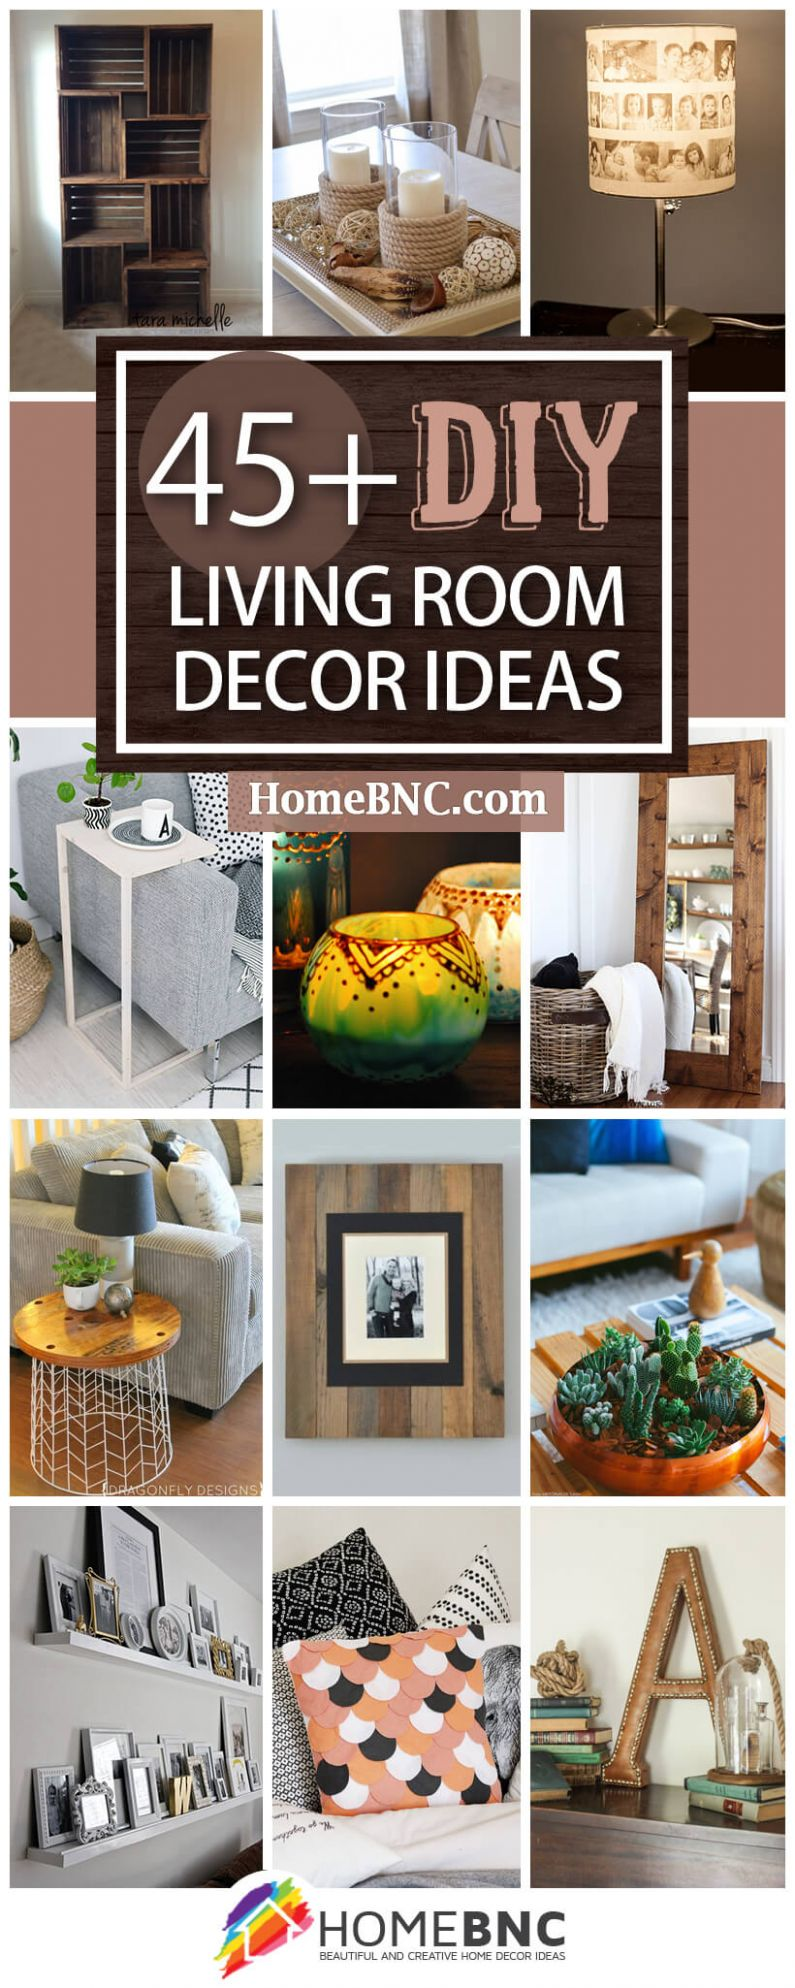 12+ Best DIY Living Room Decorating Ideas and Designs for 12